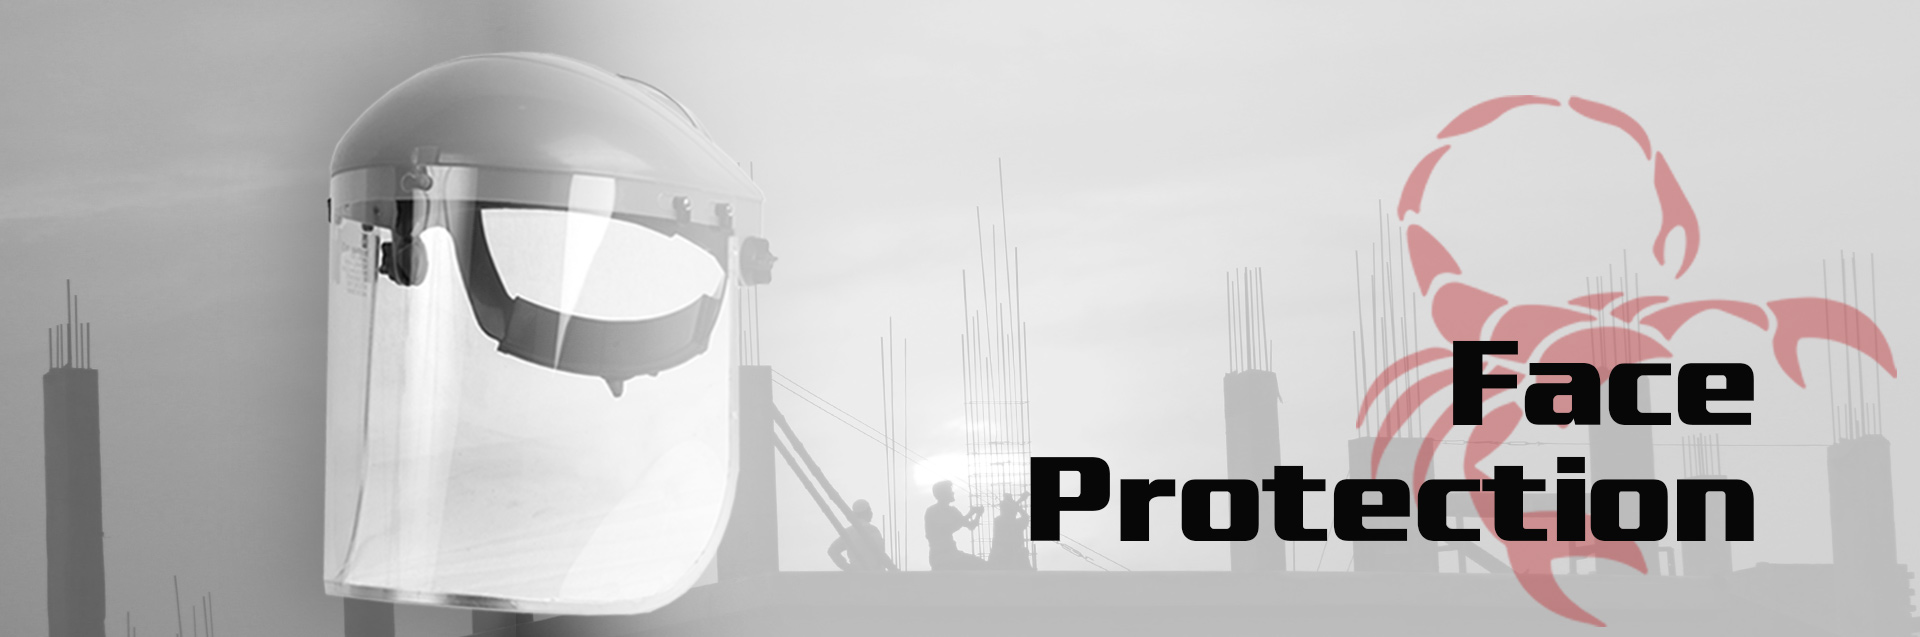 Face Protection Banner